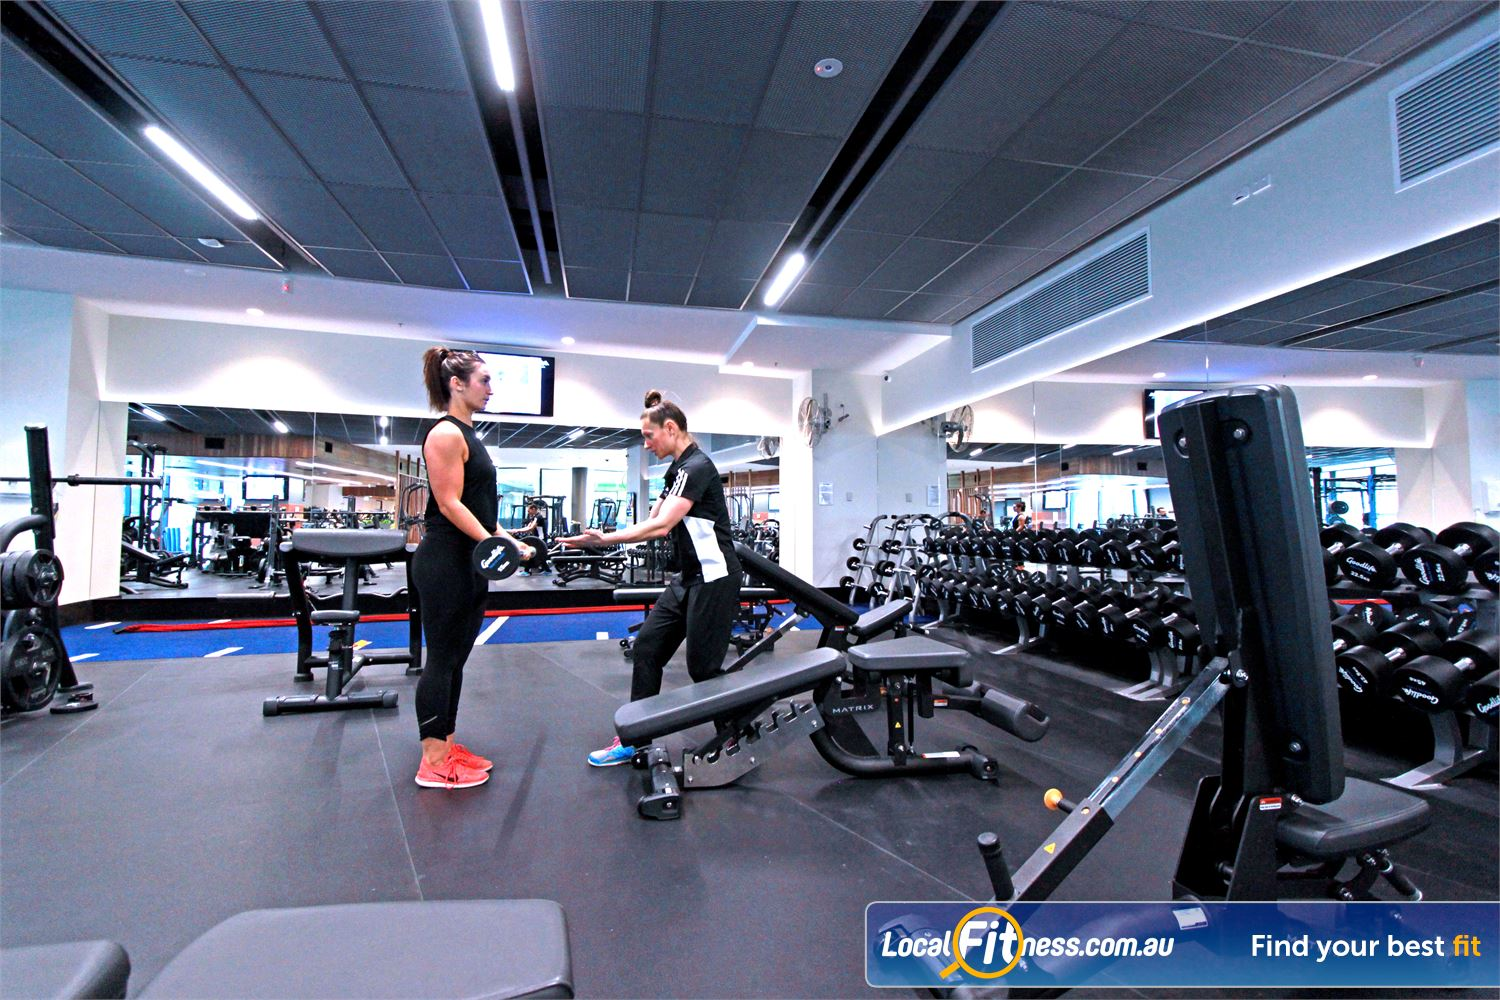 Goodlife Health Clubs Docklands Get the right advice on strength training from our Docklands gym team.